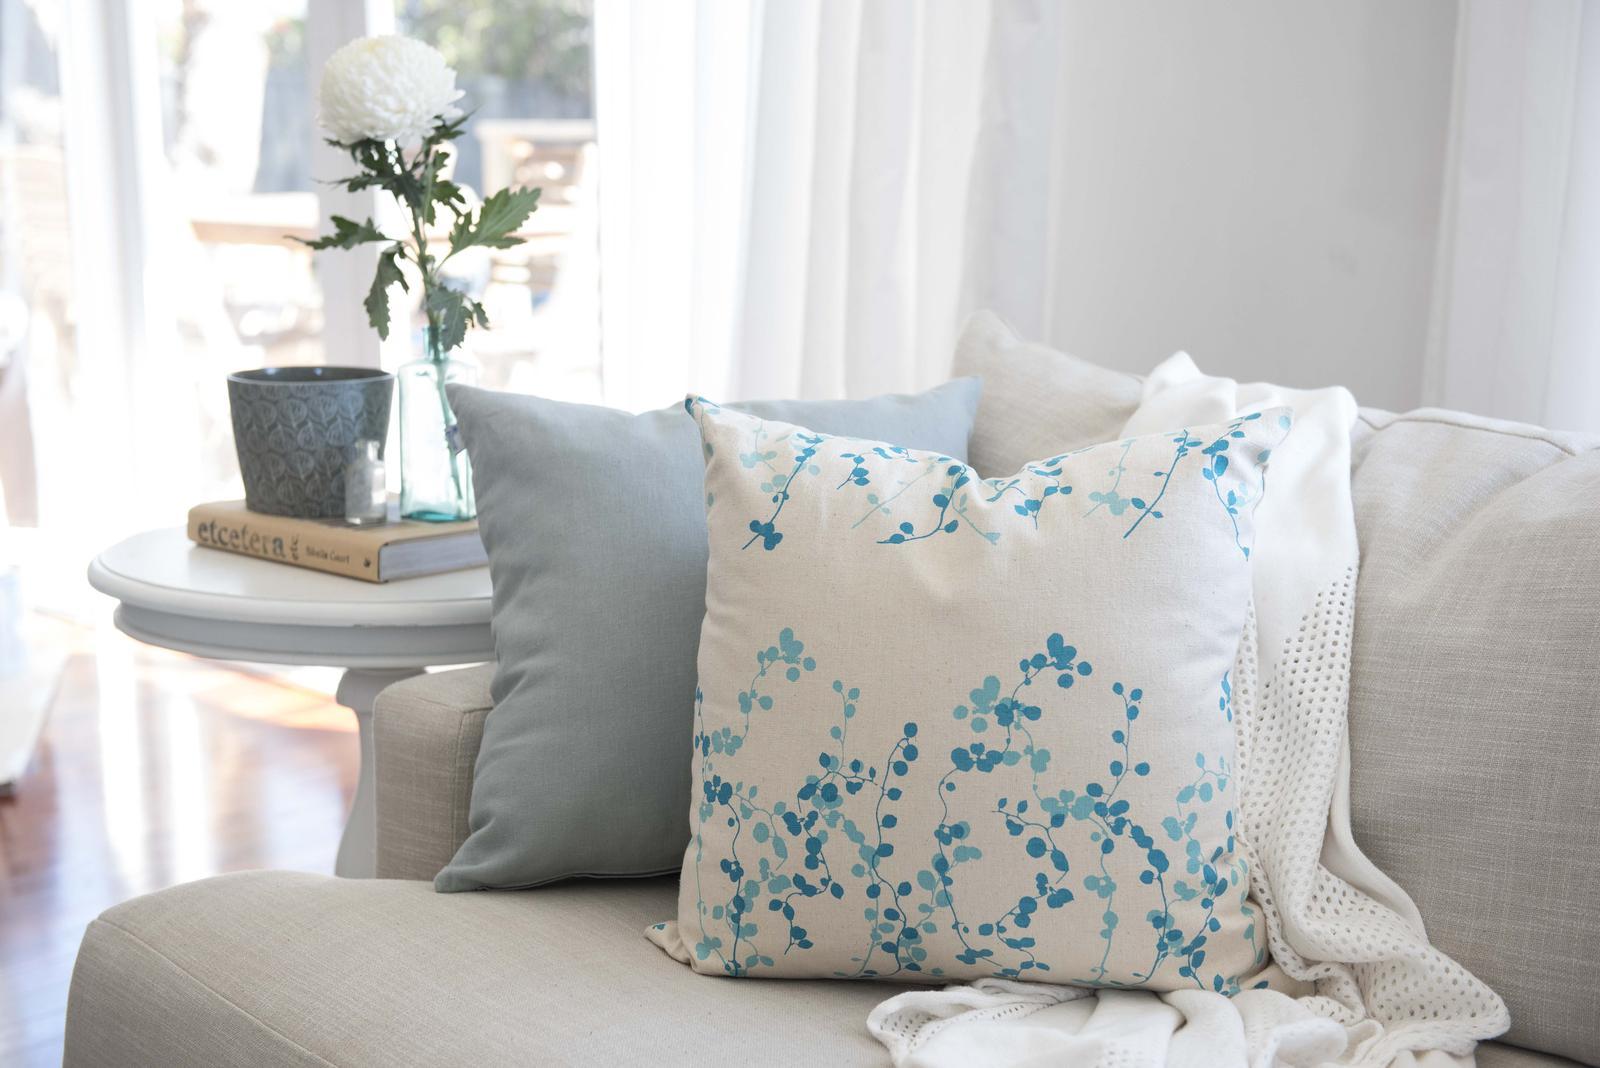 'Cascades' hand printed cushion